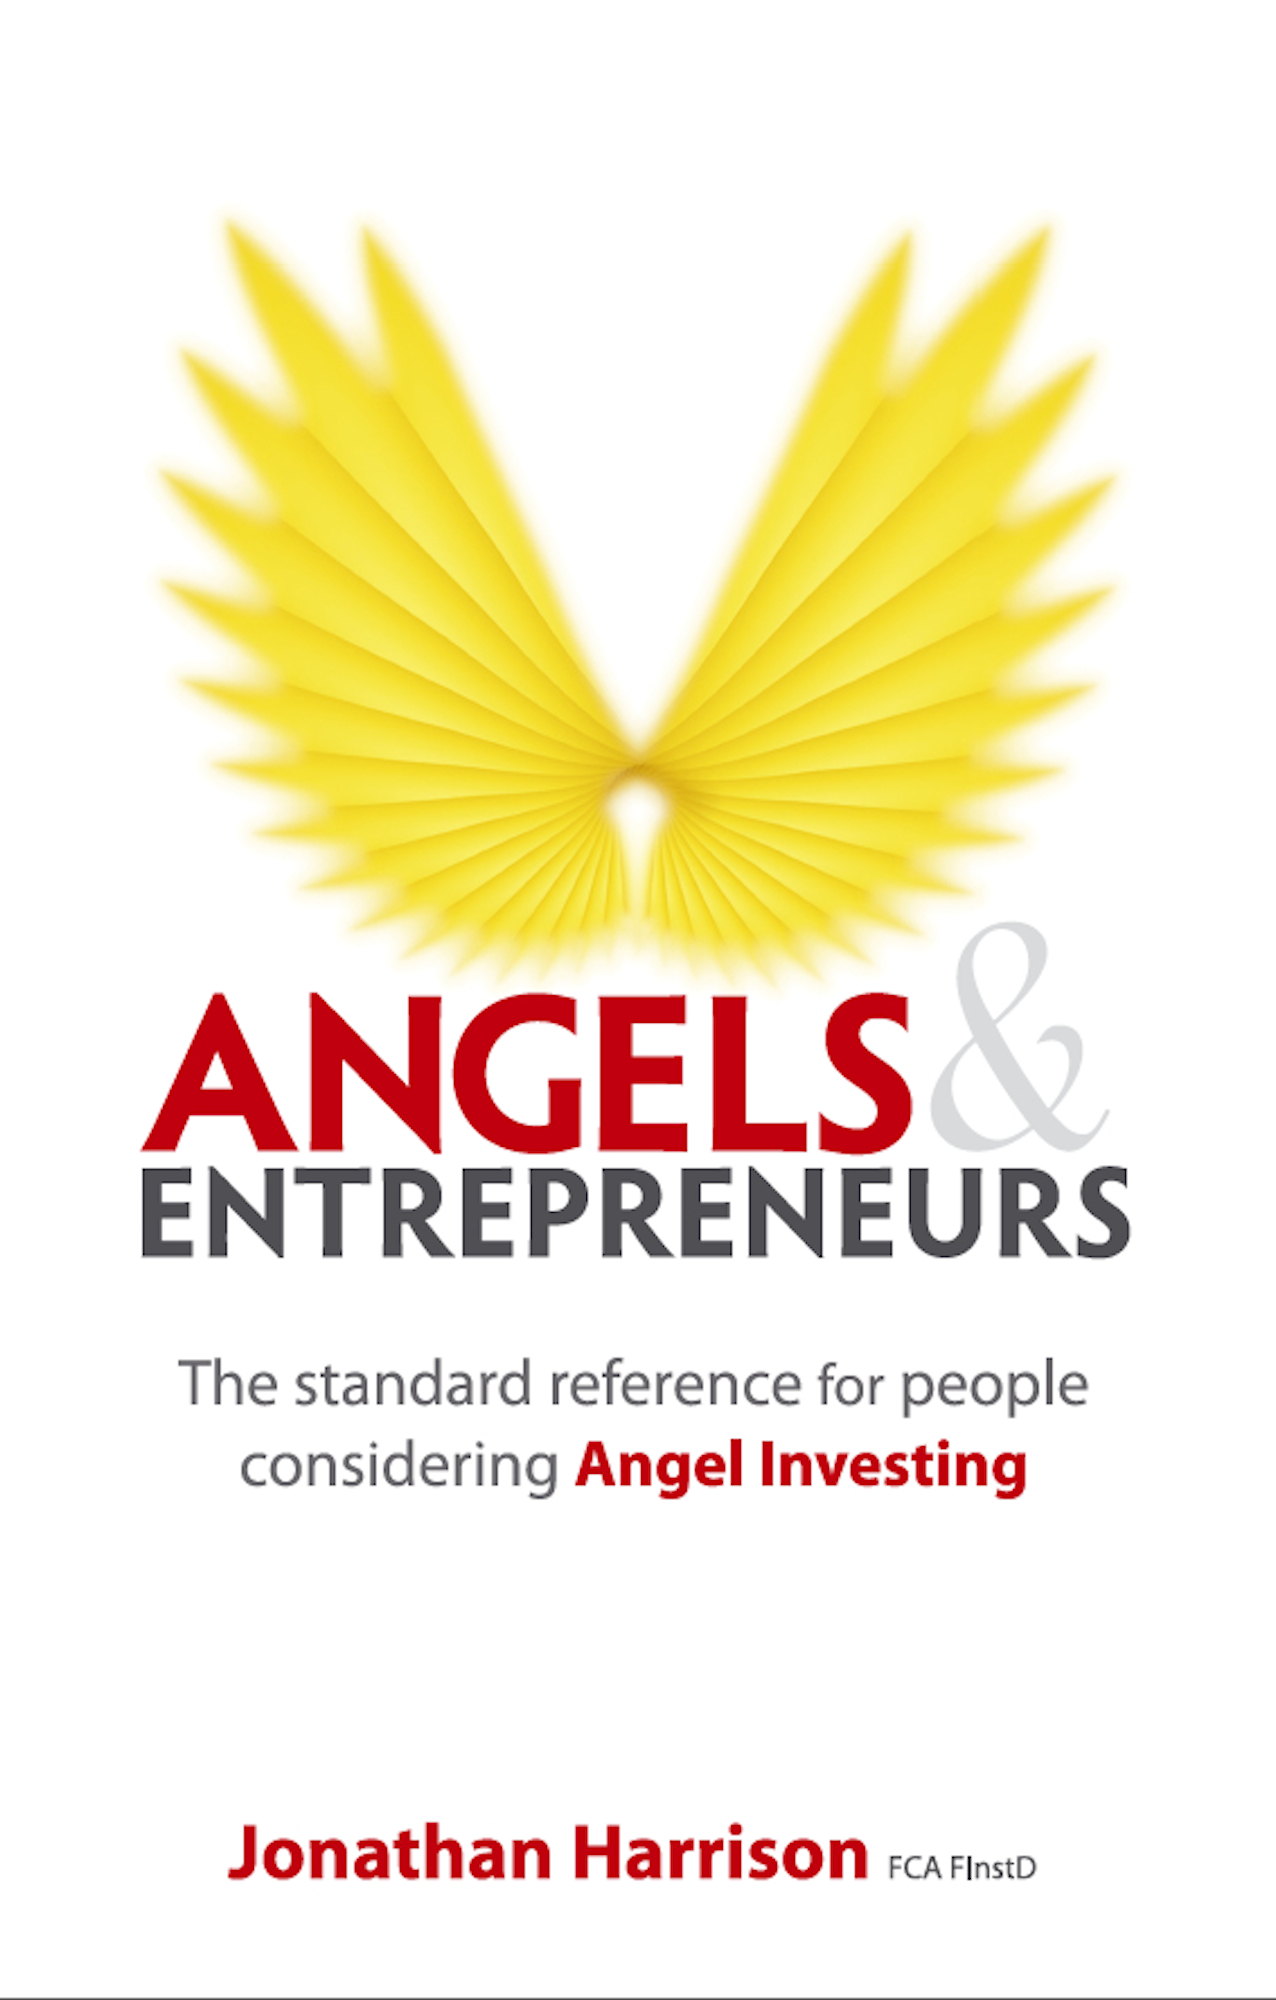 Angels and Entrepreneurs